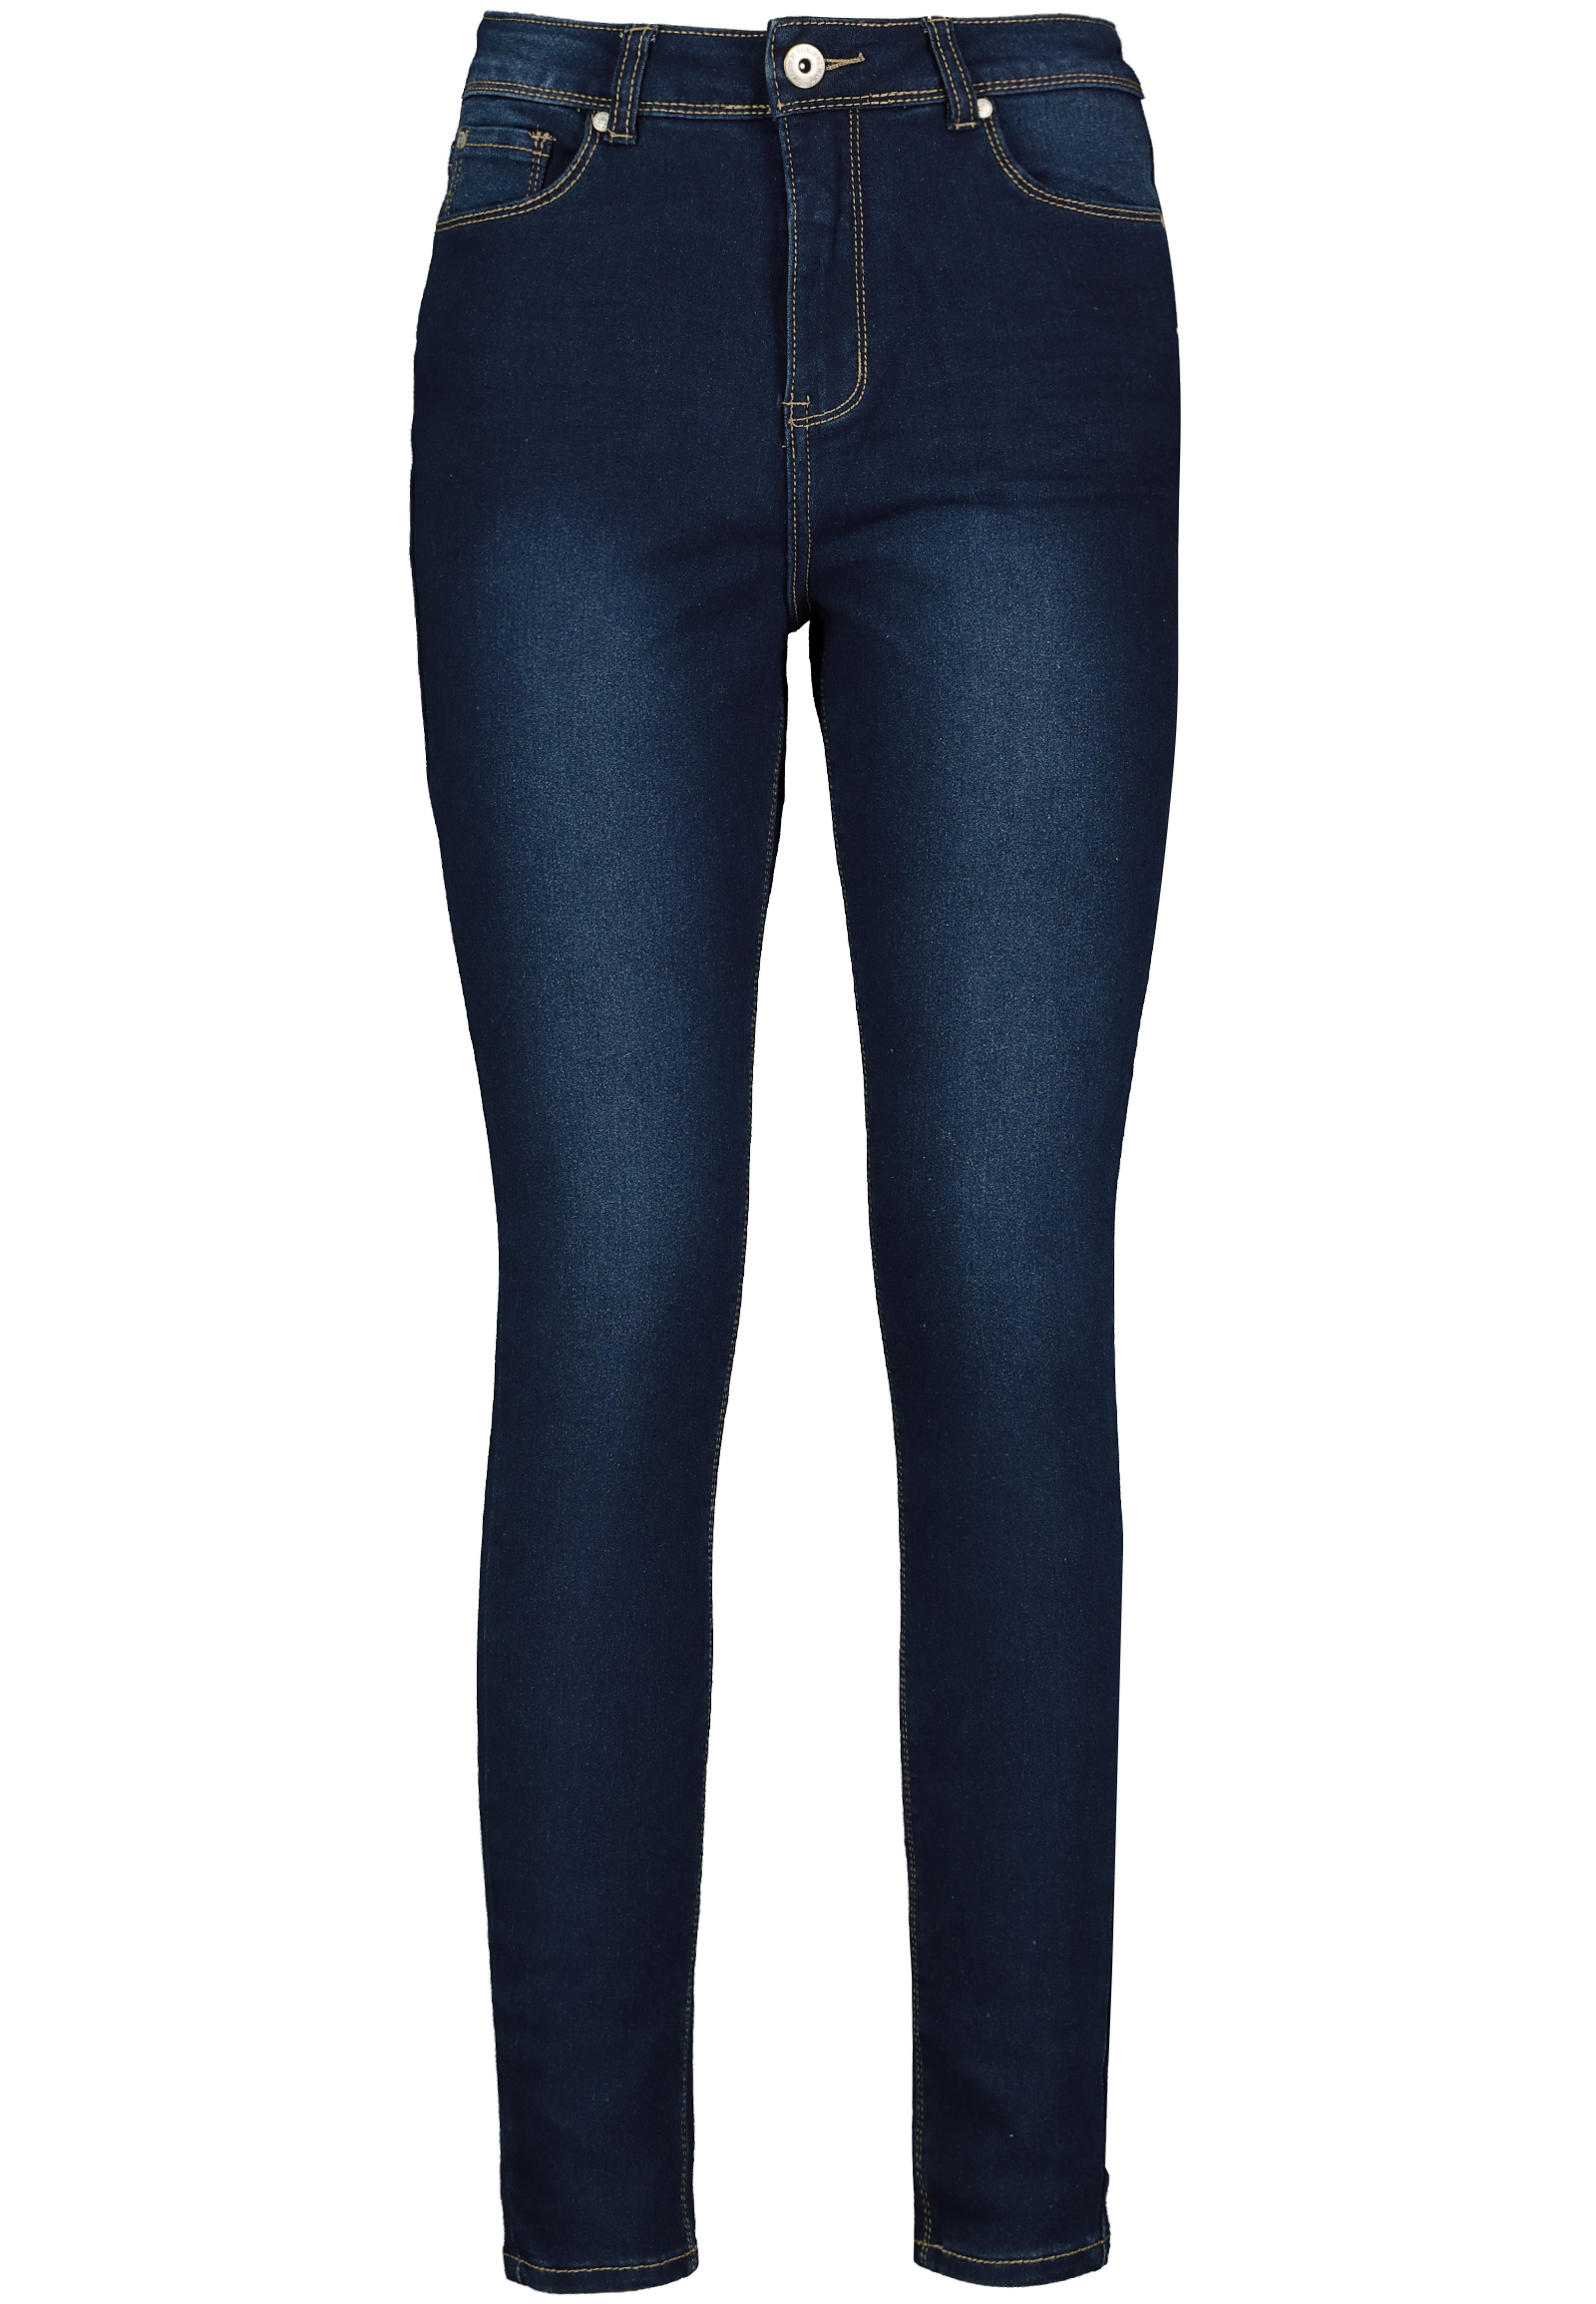 sublevel - Skinny High Waist Jeans